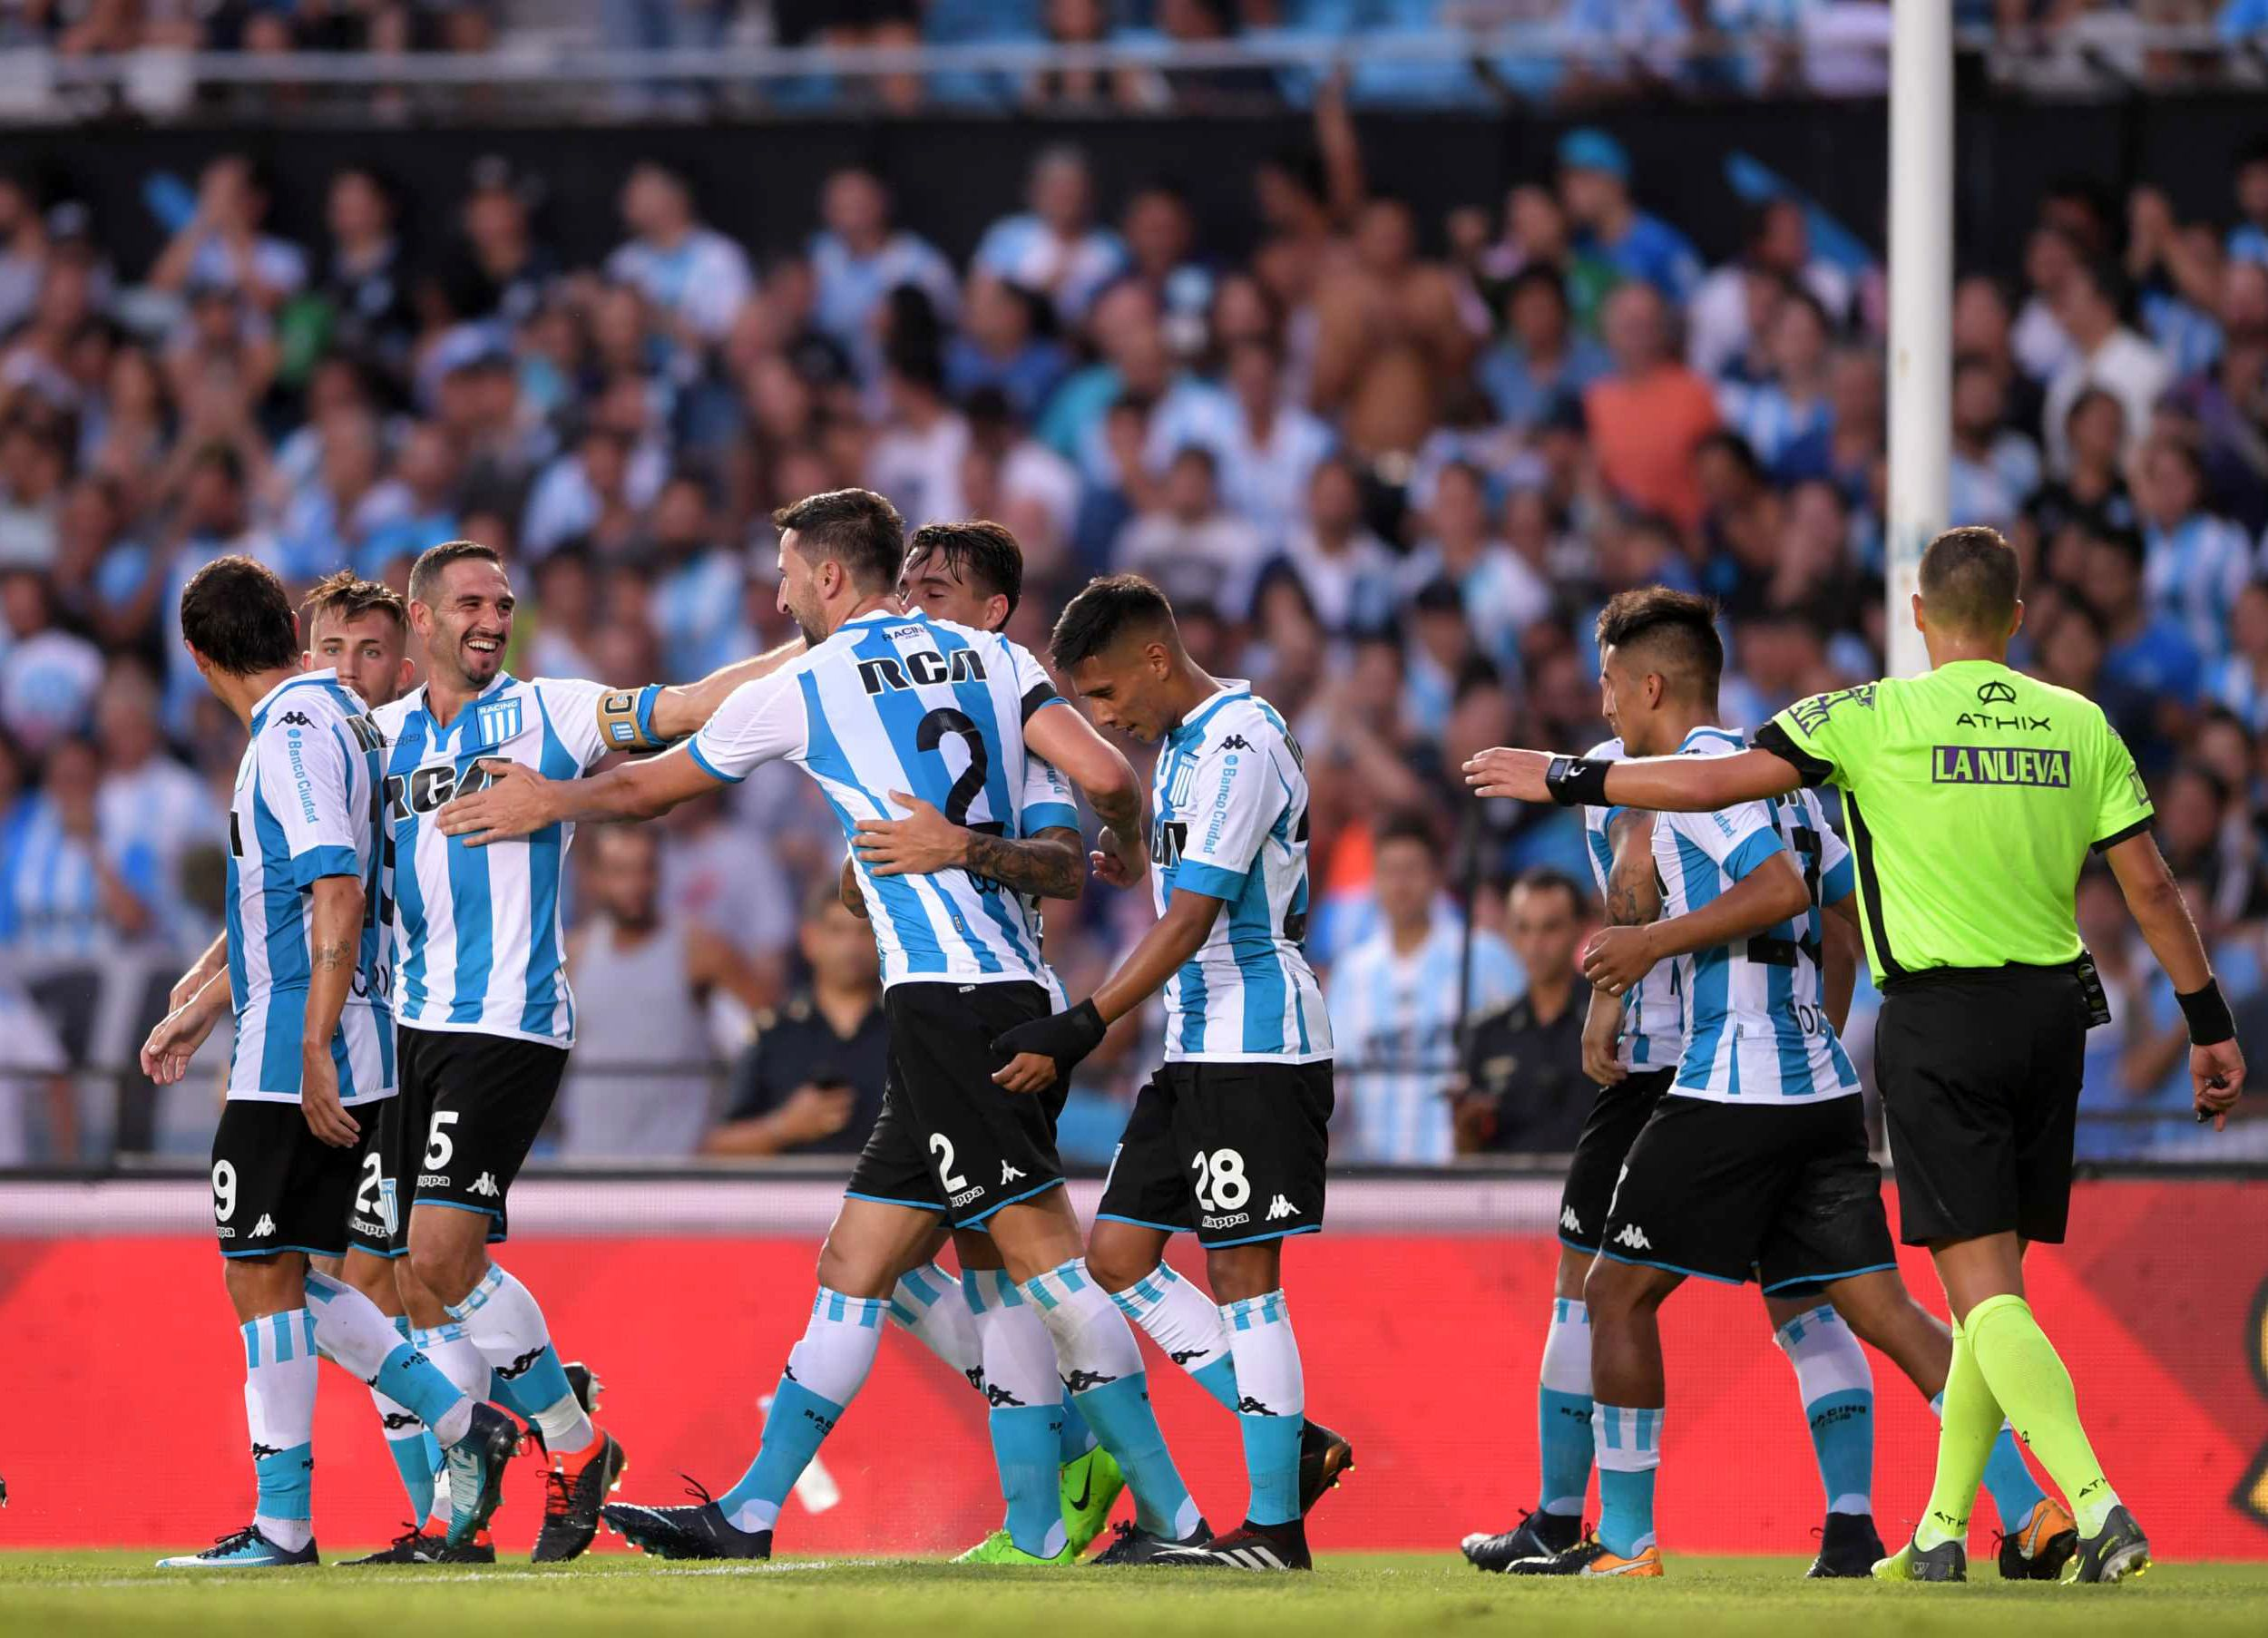 Godoy Cruz vs. Racing por la fecha 17 de la Superliga: horario, formaciones y TV